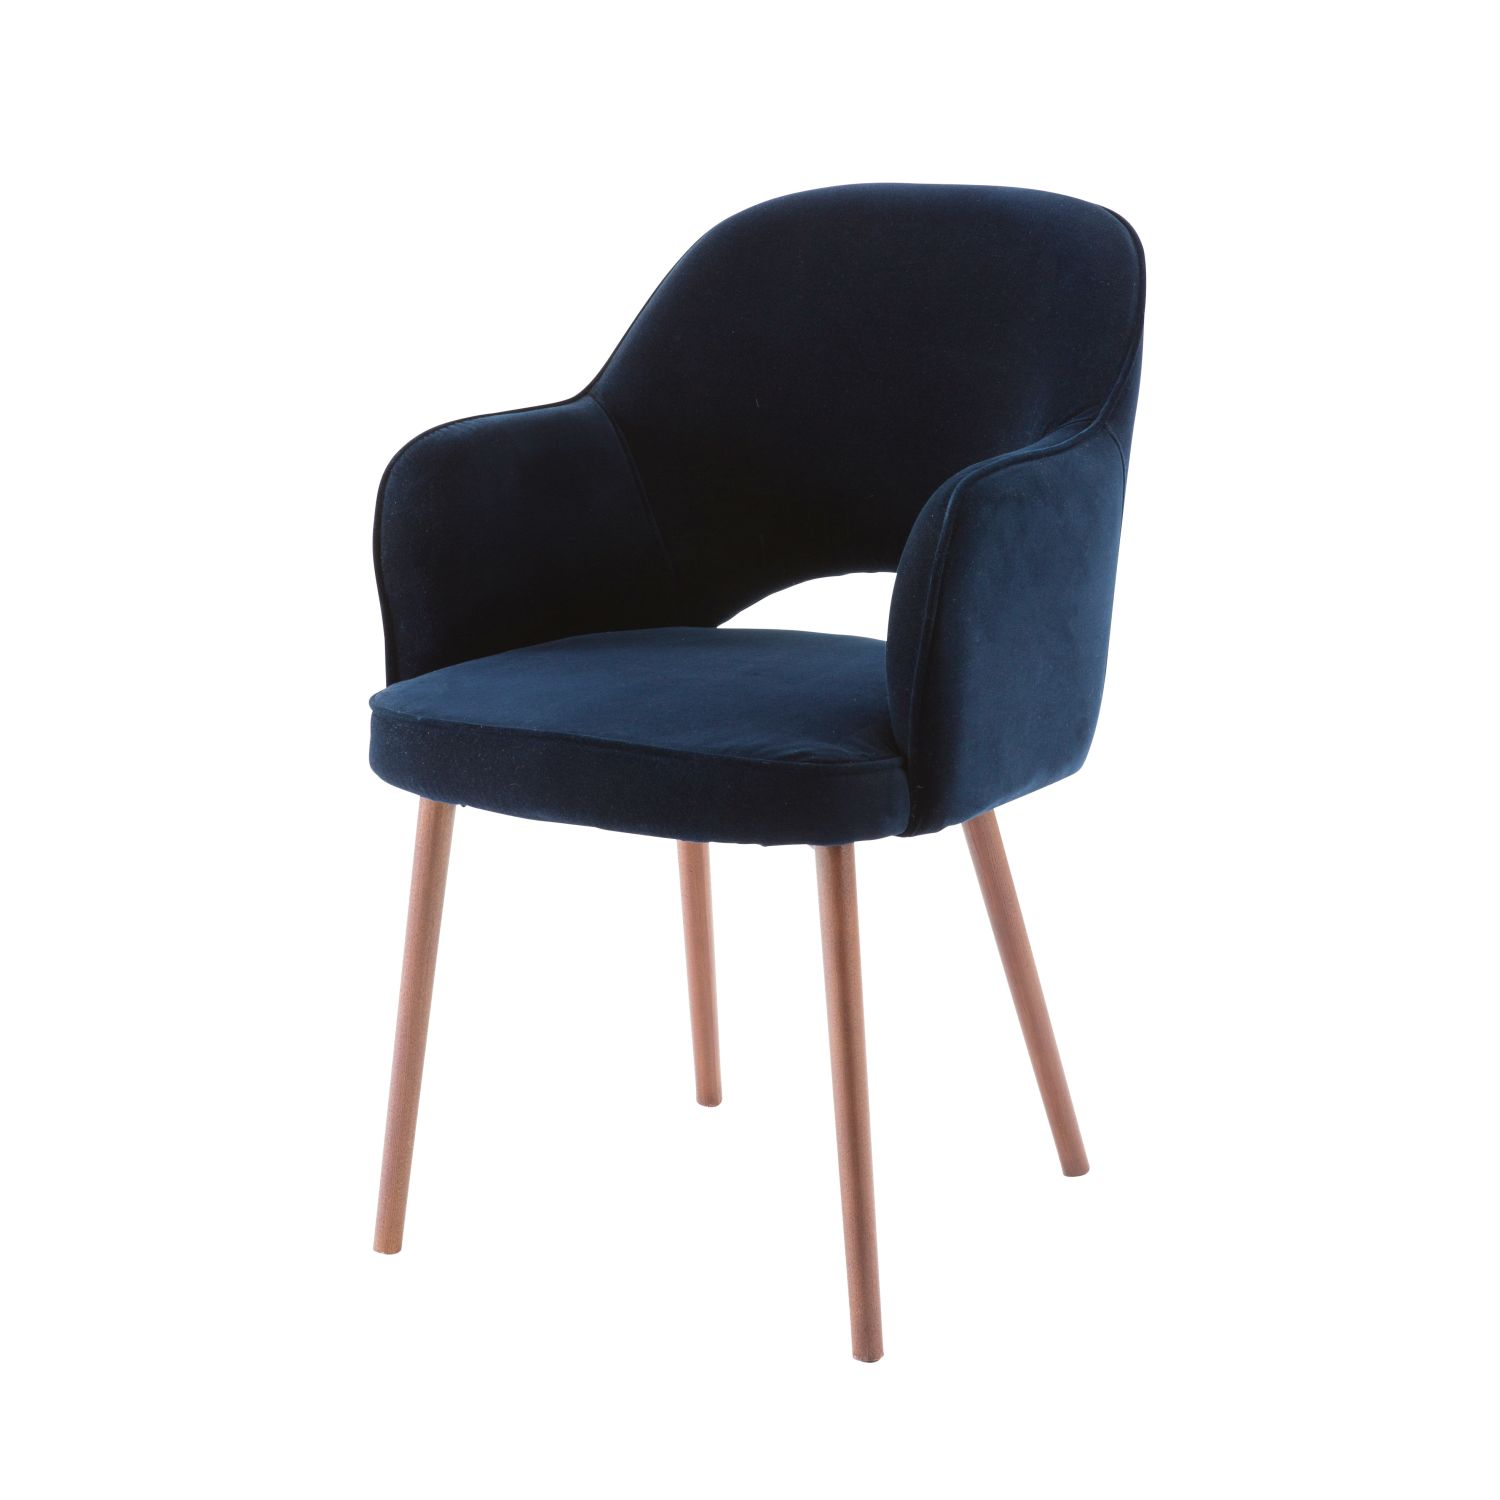 fauteuil en velours bleu nuit maisons du monde. Black Bedroom Furniture Sets. Home Design Ideas